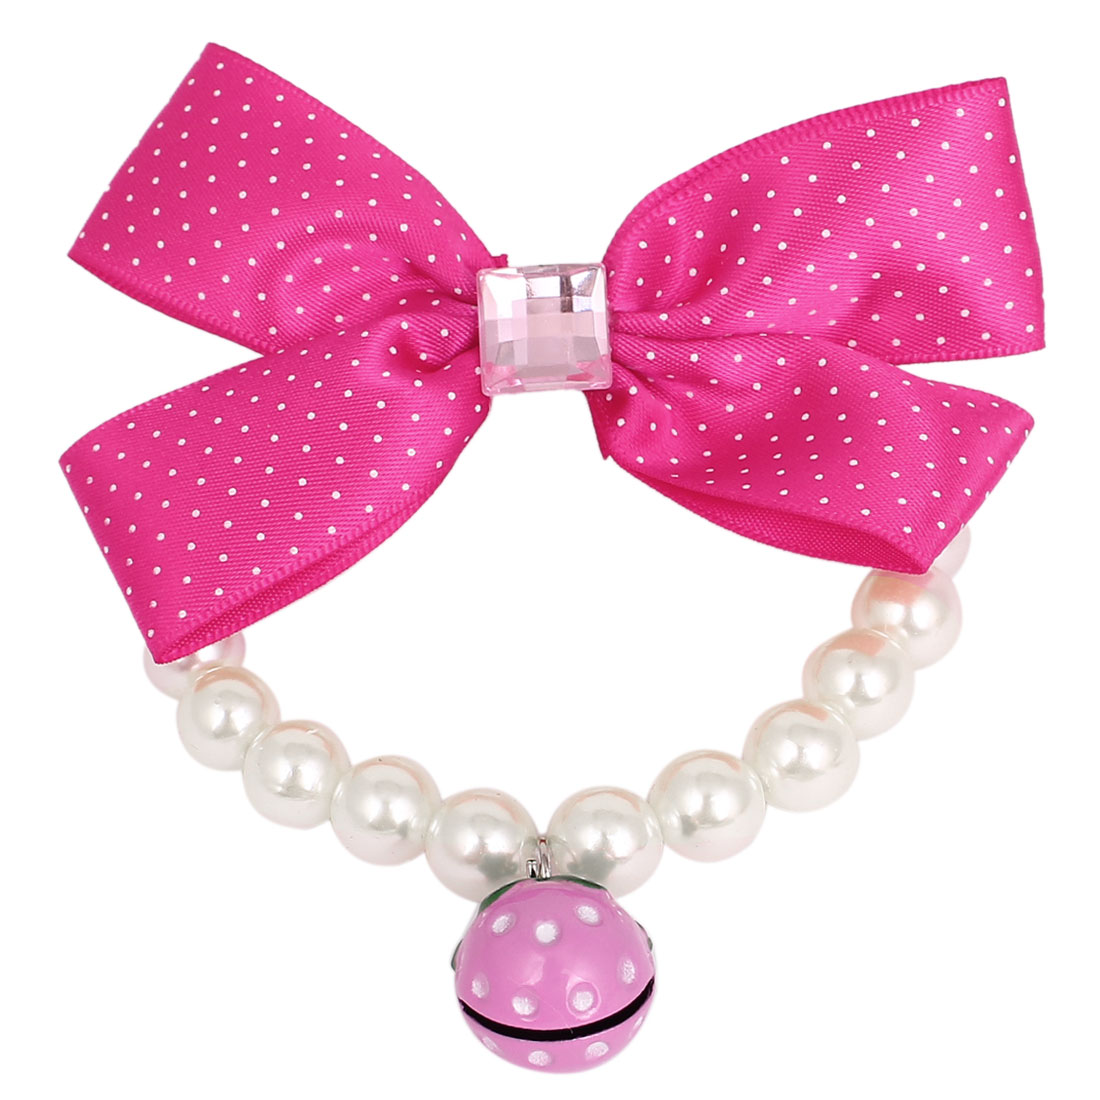 Bowtie Decor Pet Dog Imitation Pearl Linked Collar Necklace White Size S